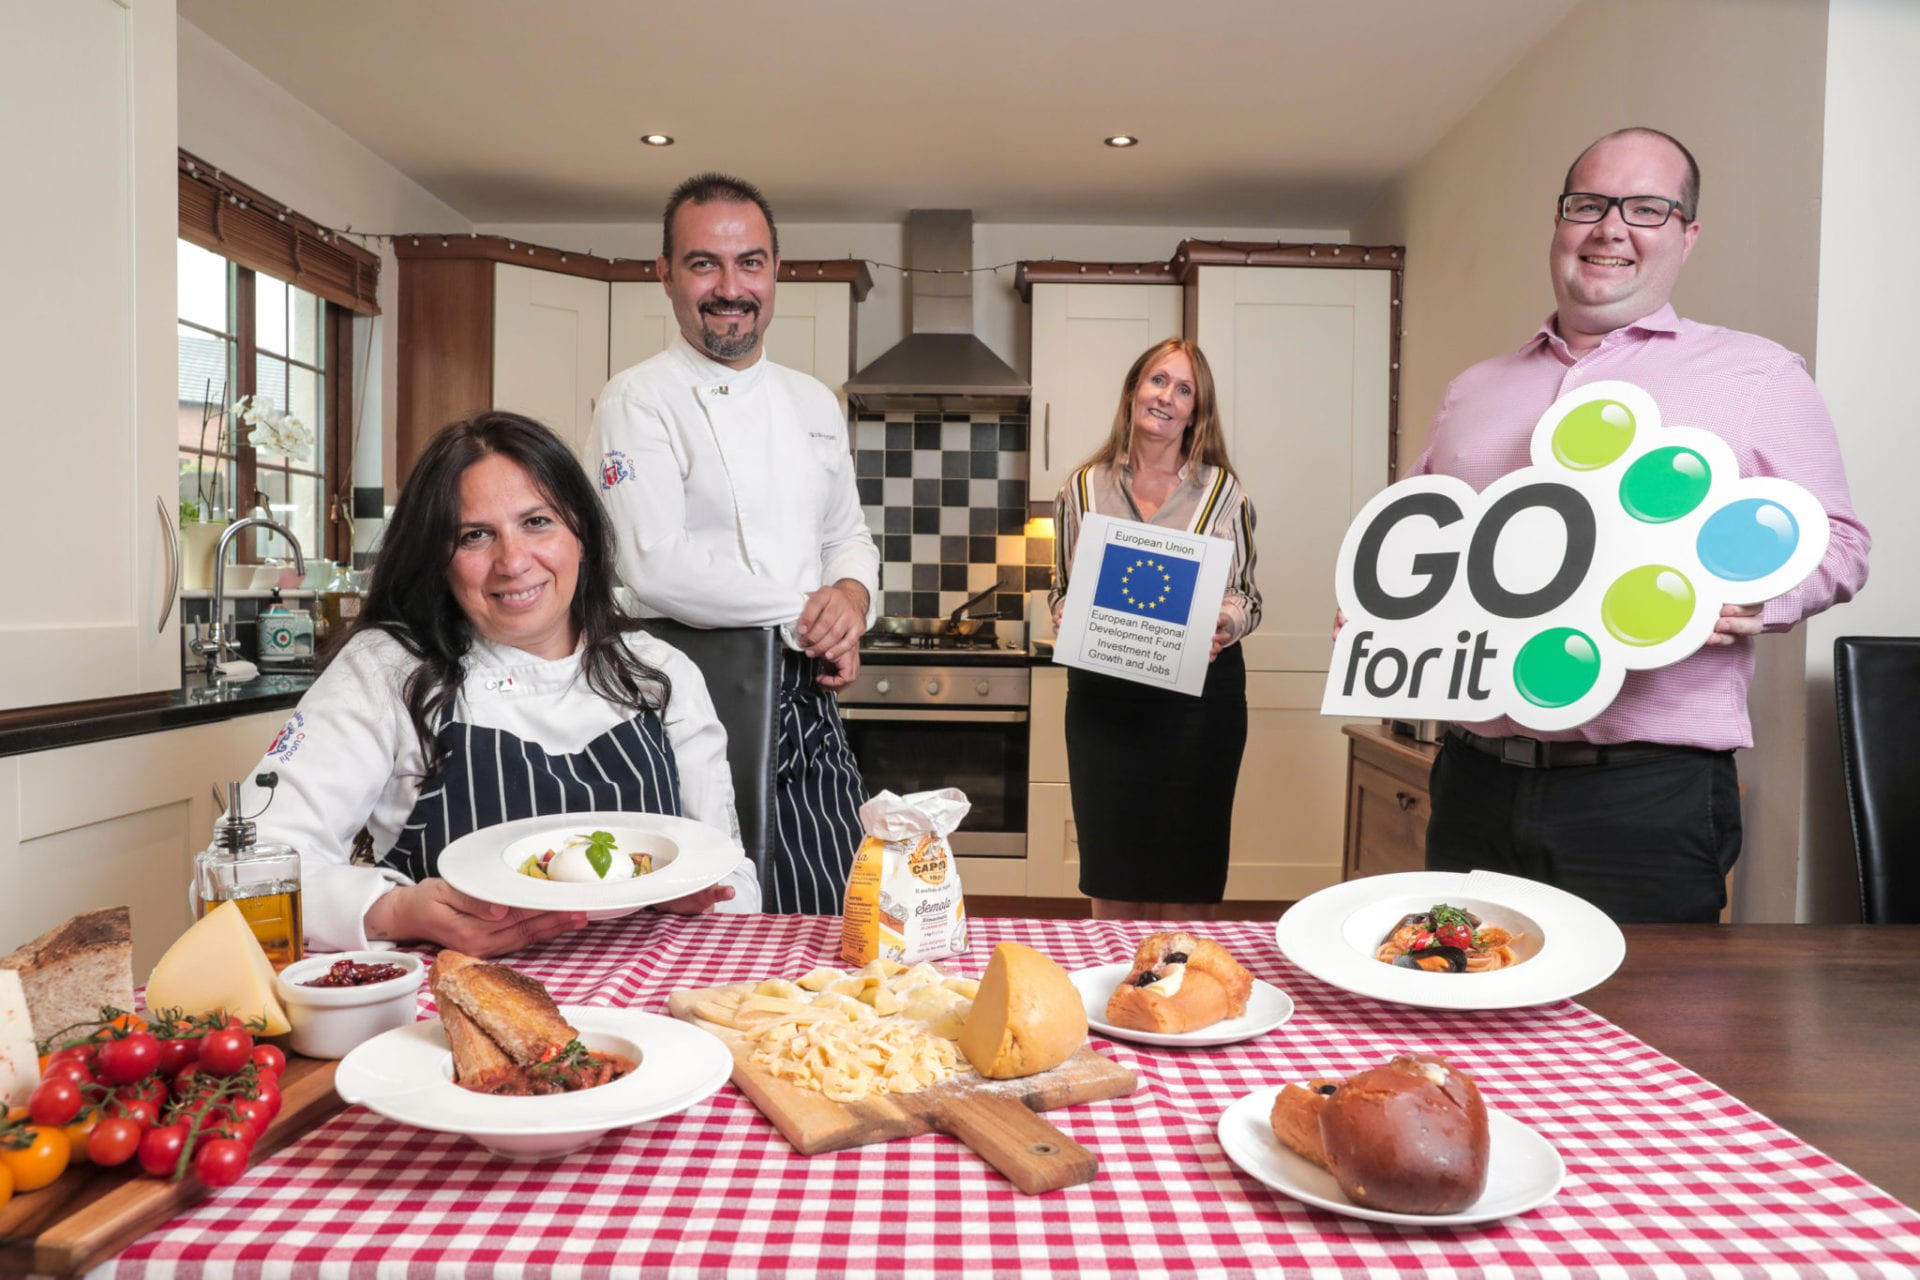 Two locally based entrepreneurs have used their expert cooking skills to pursue their own joint business venture in Belfast - Delizia Italian Food – thanks to support from the Go For It Programme, in association with Belfast City Council.